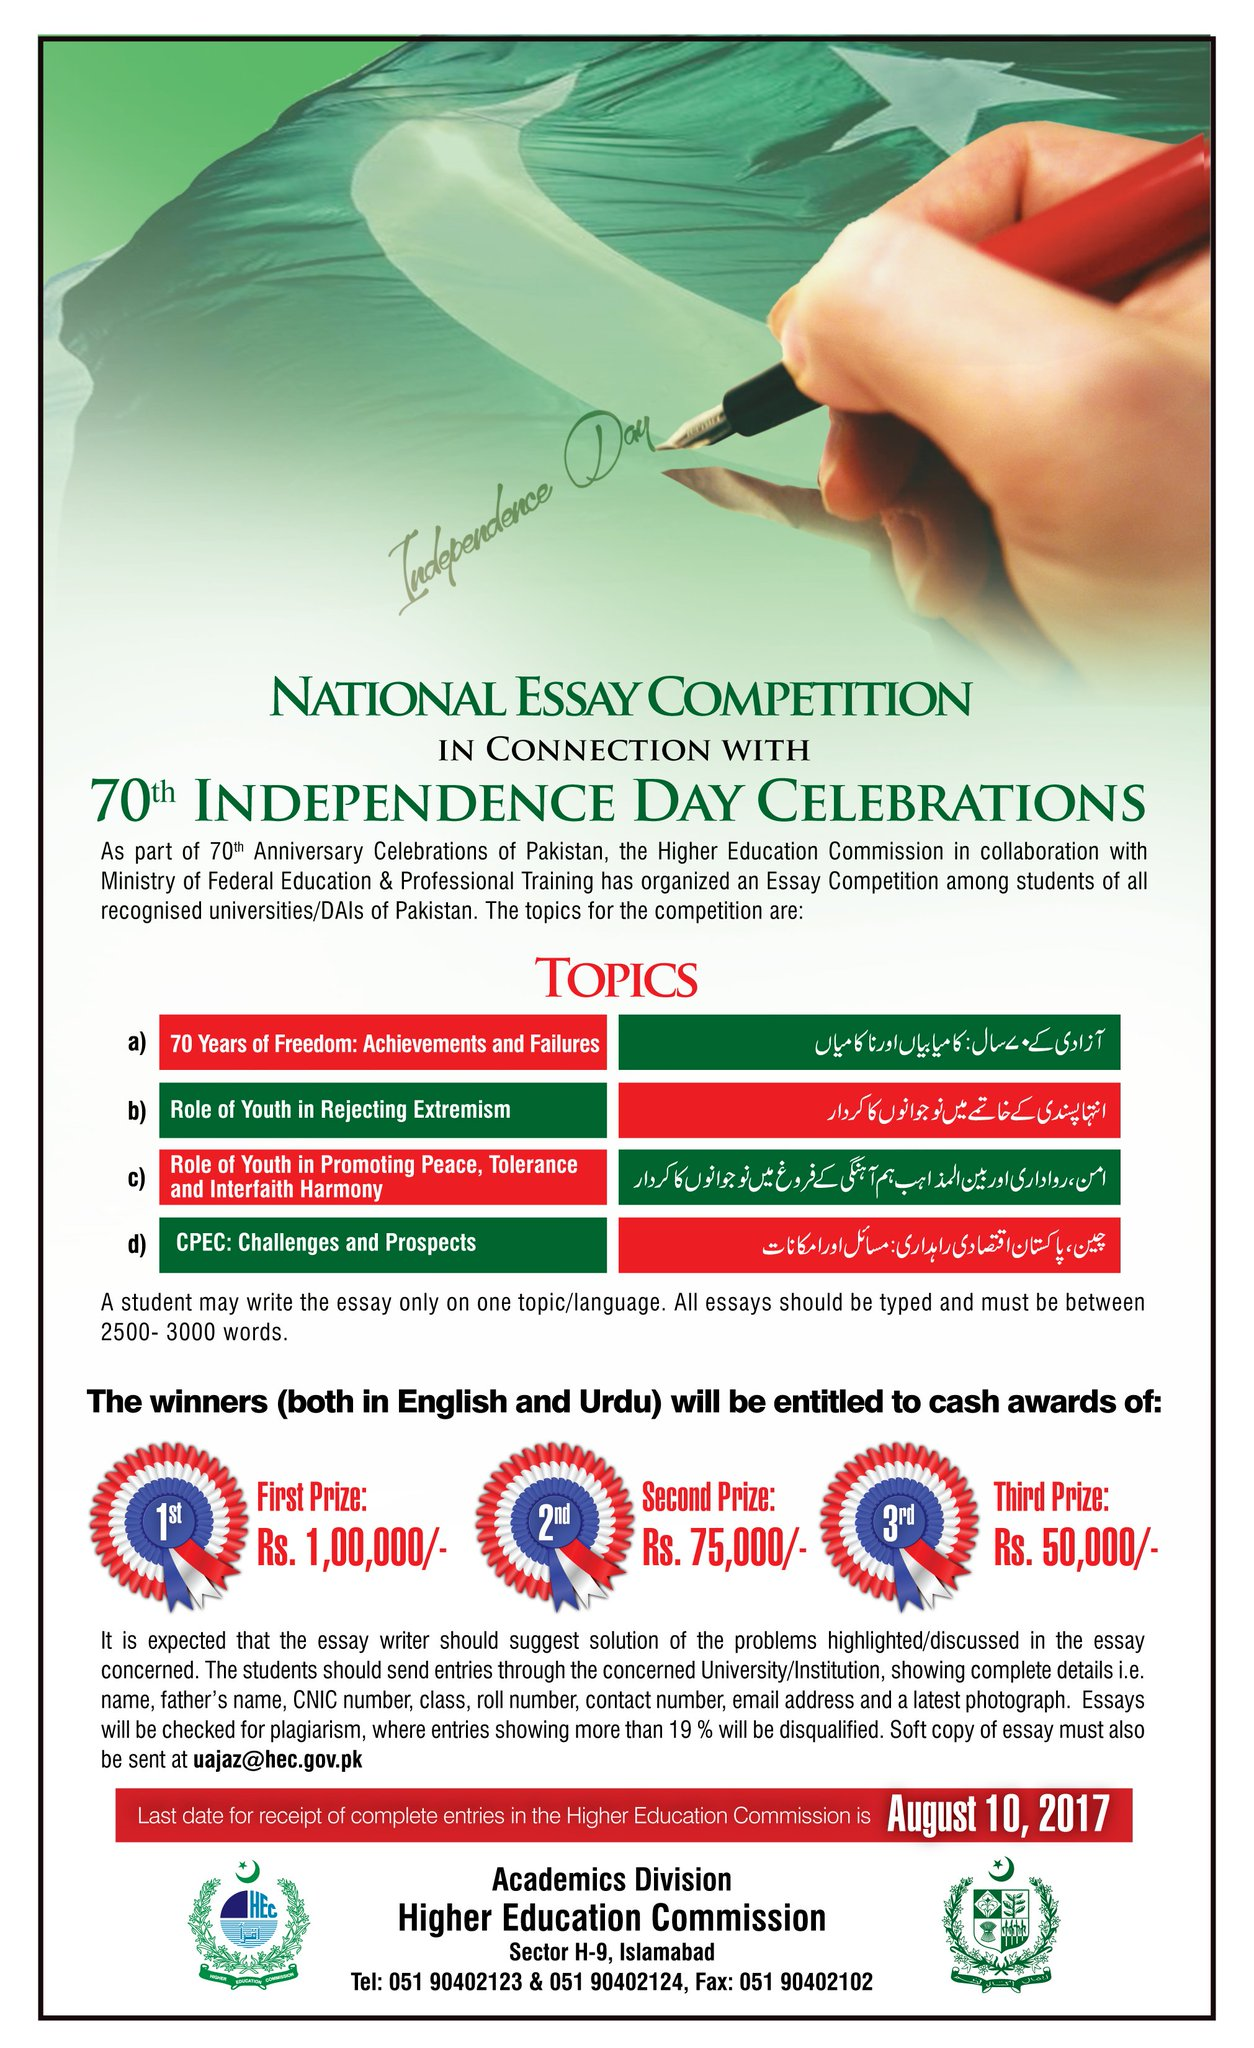 pakistan day celebration essay in english A republic day is a holiday to commemorate the day when a country became a republicin some countries, it is known as national day or proclamation day, or by some other sort of name.